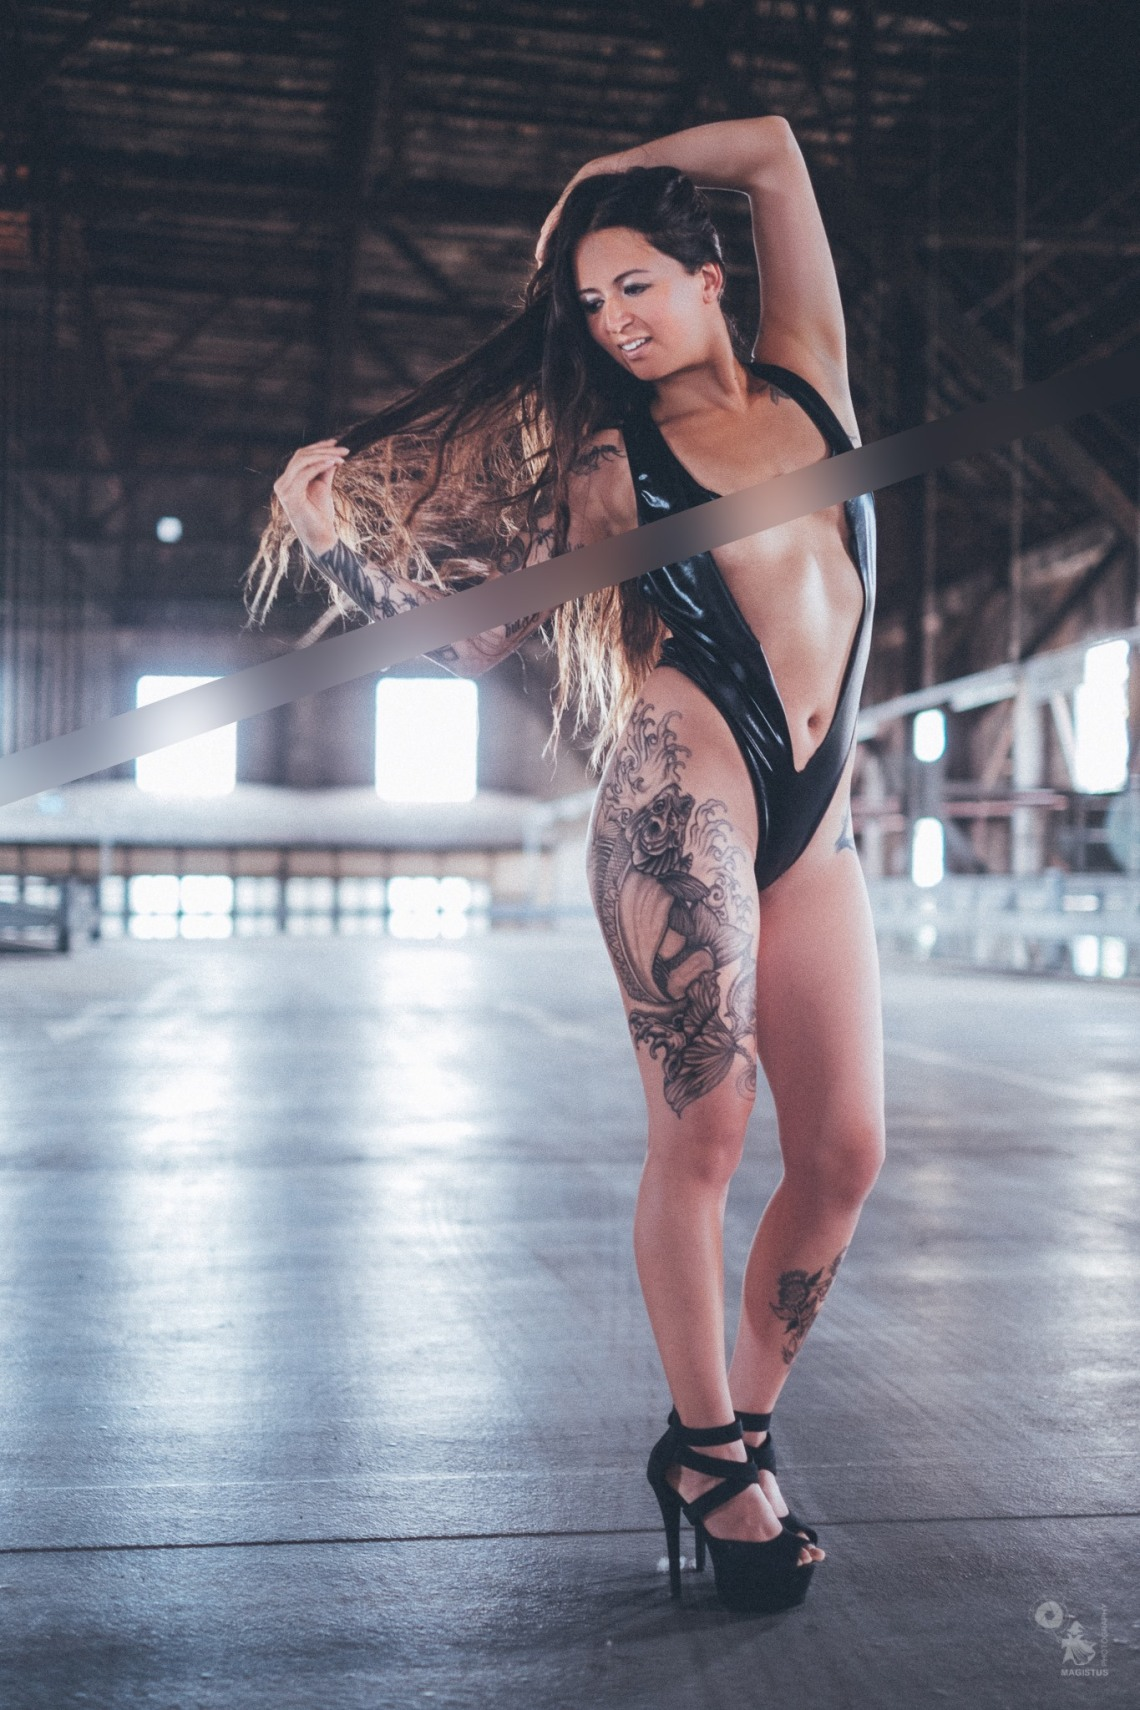 Super sexy tattoo model is posing topless